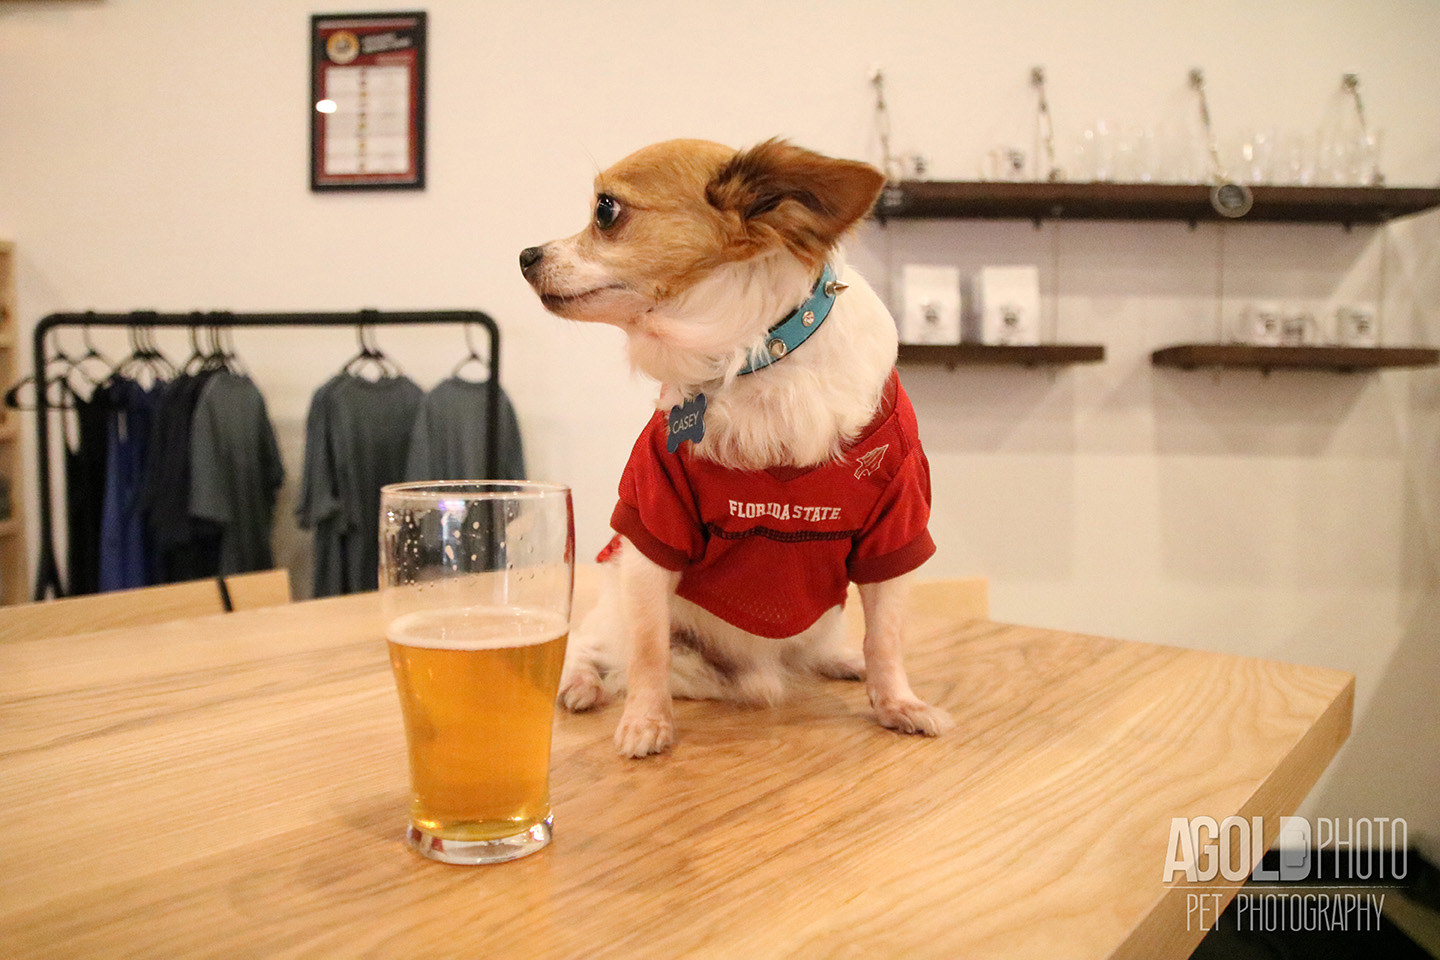 Seminole Heights Pup Crawl_AGoldPhoto Pet Photography_3